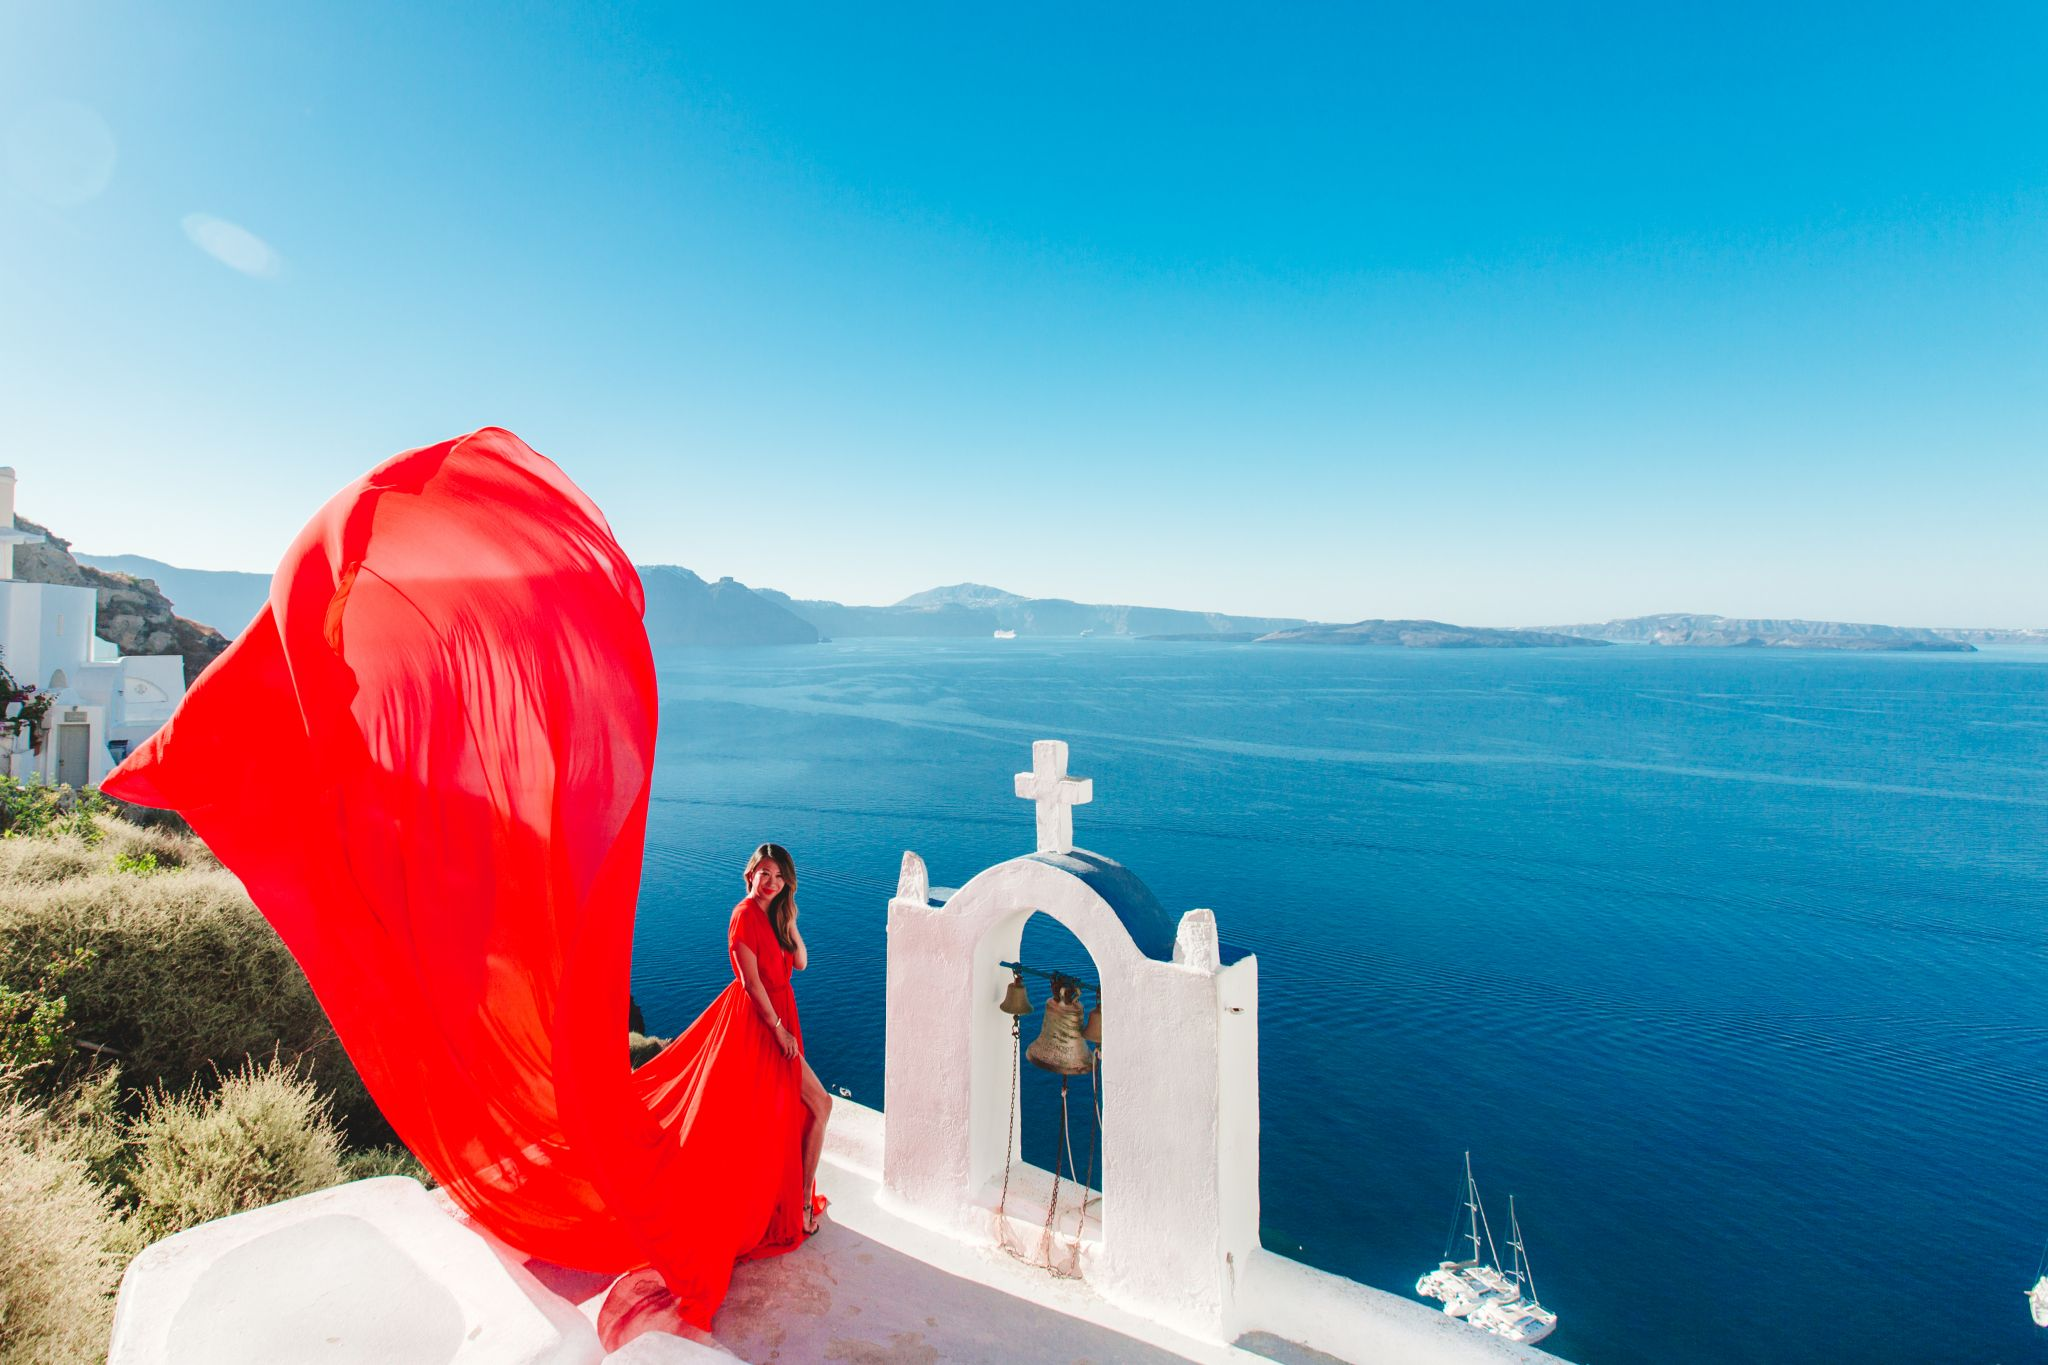 Flying Dress photos Santorini, Best places to take photos in Santorini, Red Dress Photos Greece, Jennifer Worman, Travel Blogger, Chicago Travel Blogger, Best Photos in Santorini